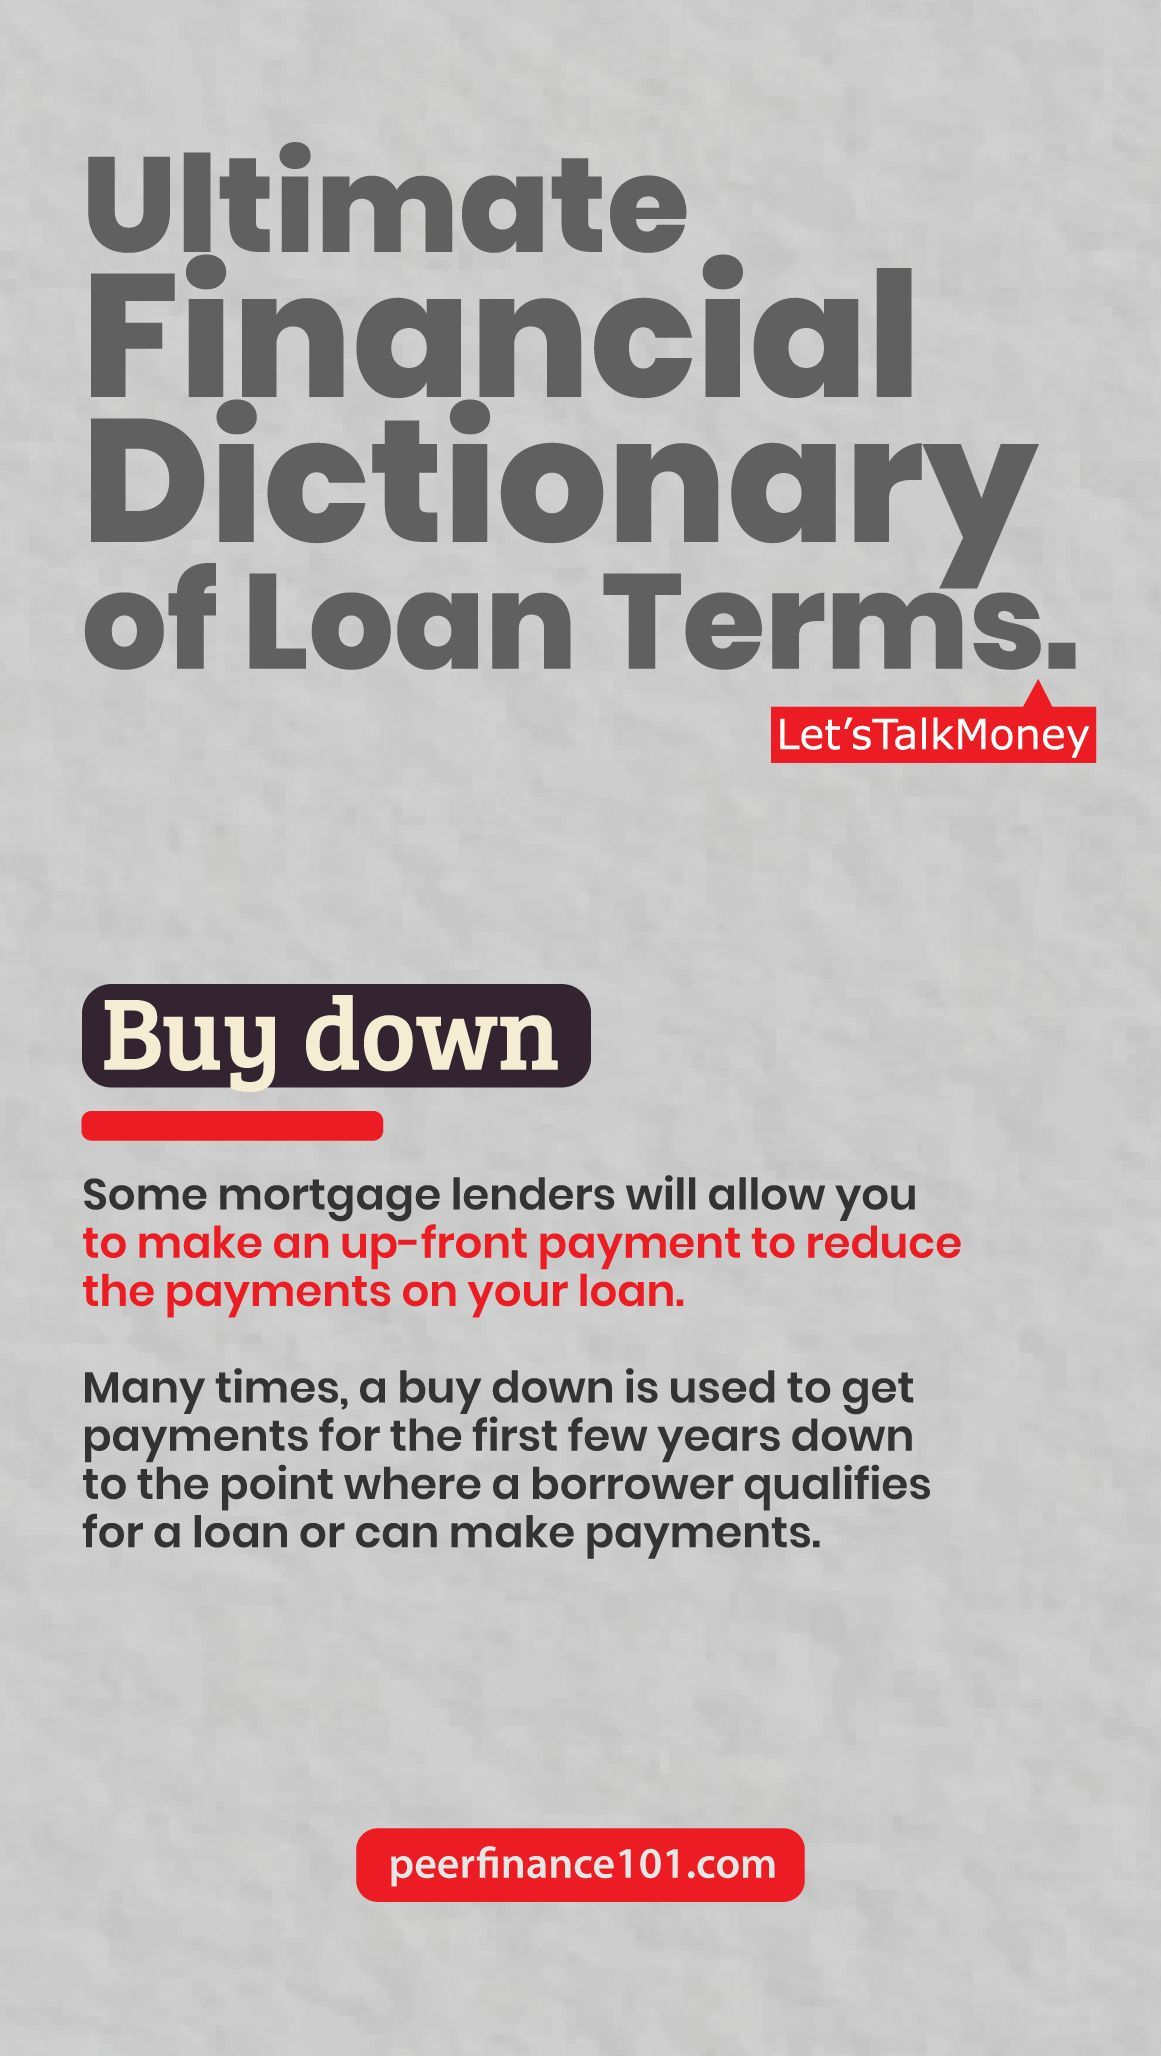 Ultimate Financial Dictionary Of Loan Terms In 2020 Personal Finance Blogs Financial Peer To Peer Lending